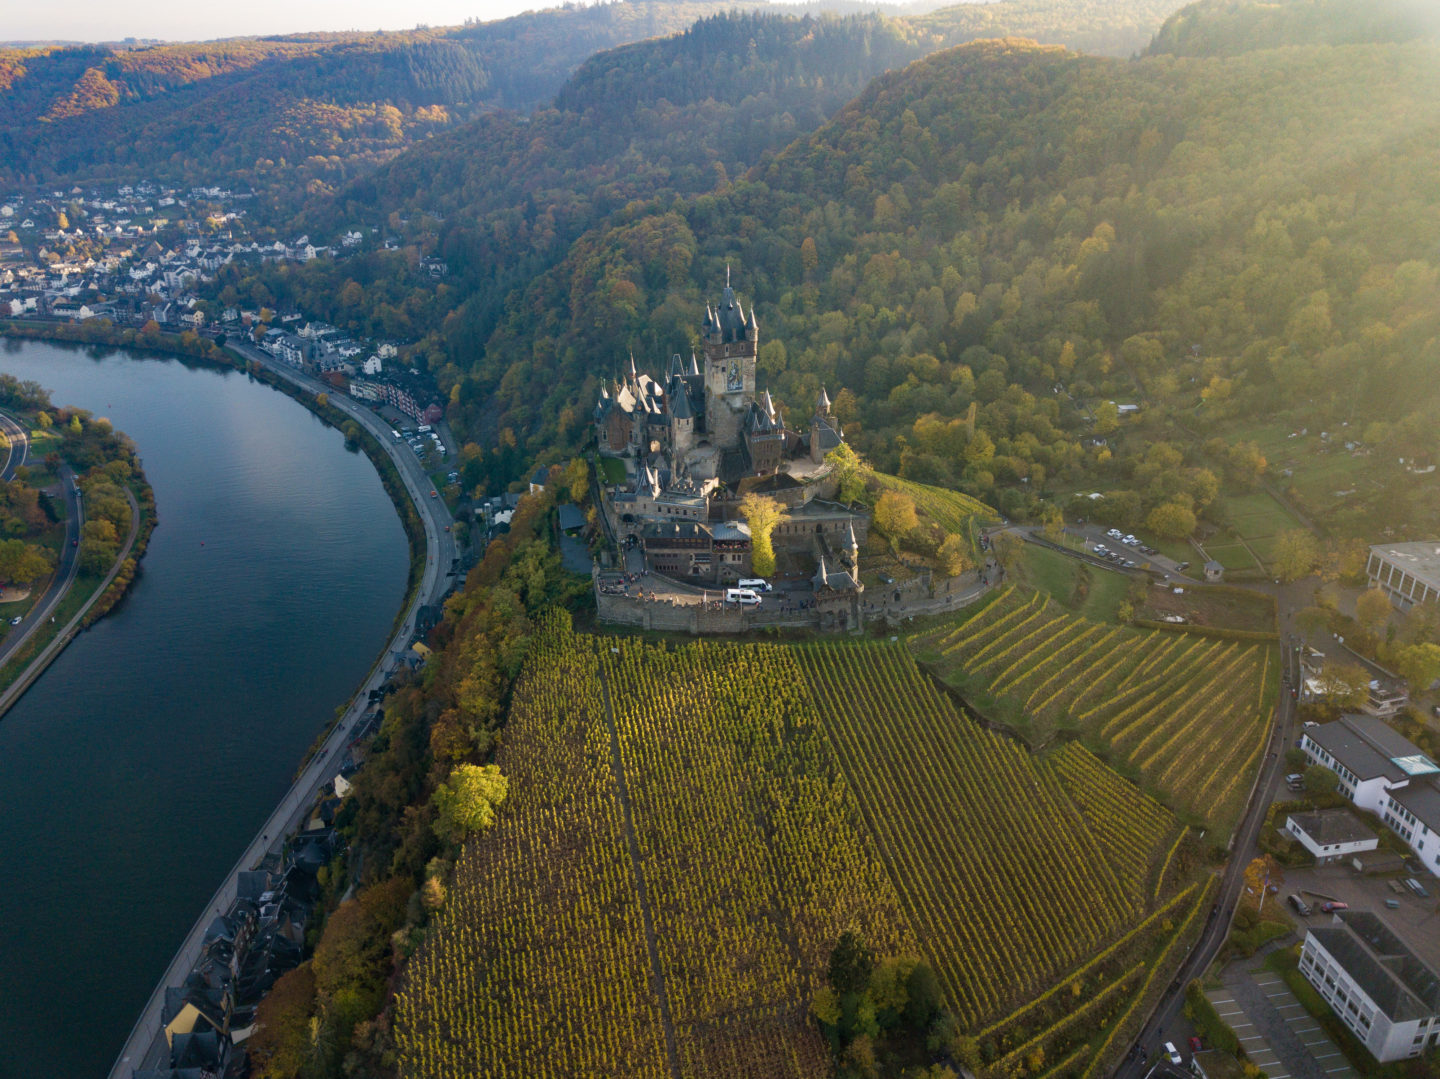 The Cochem Castle above the town